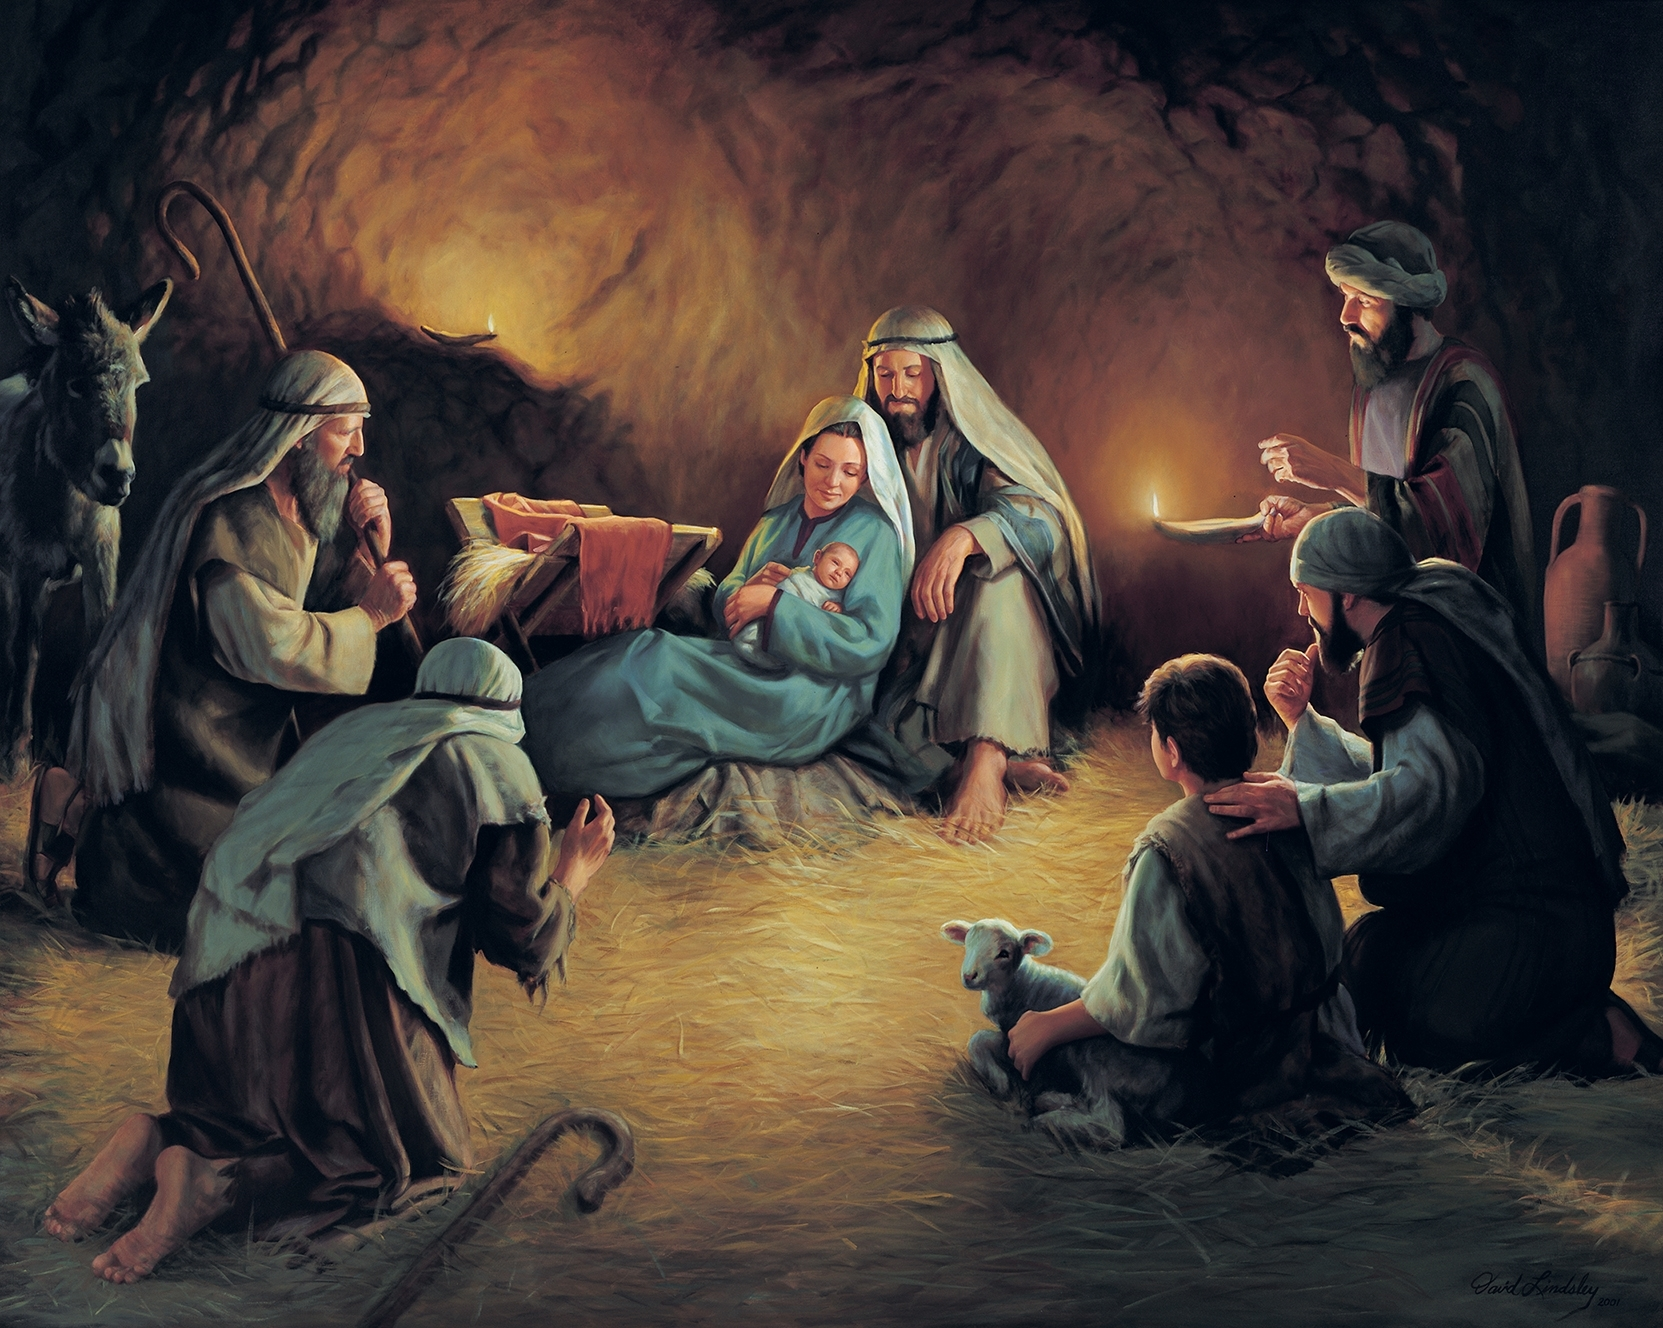 artwork from birth of jesus christ exhibit | church history museum